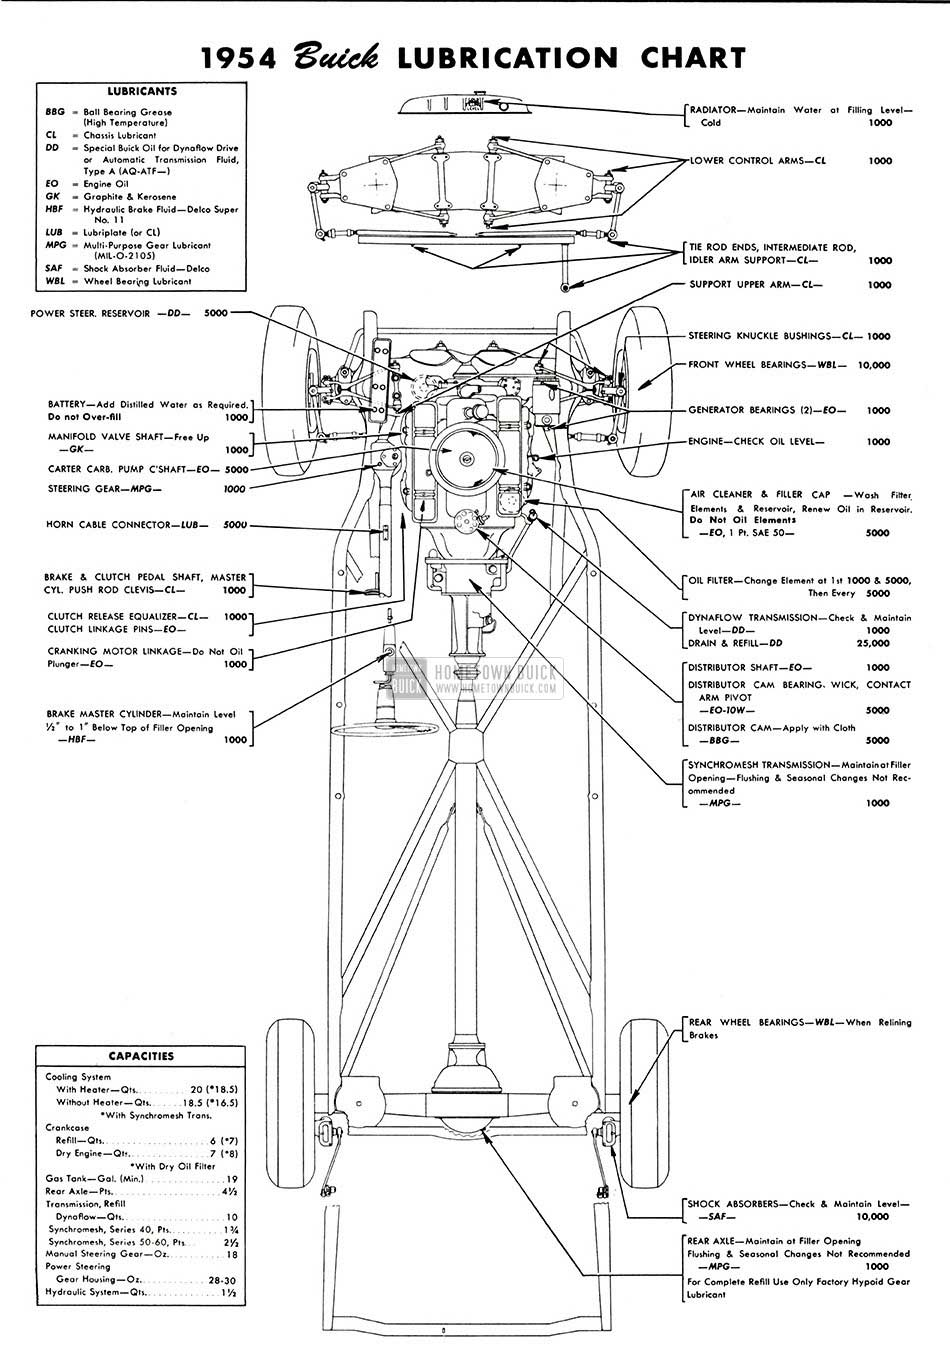 Buick Lubrication Chart